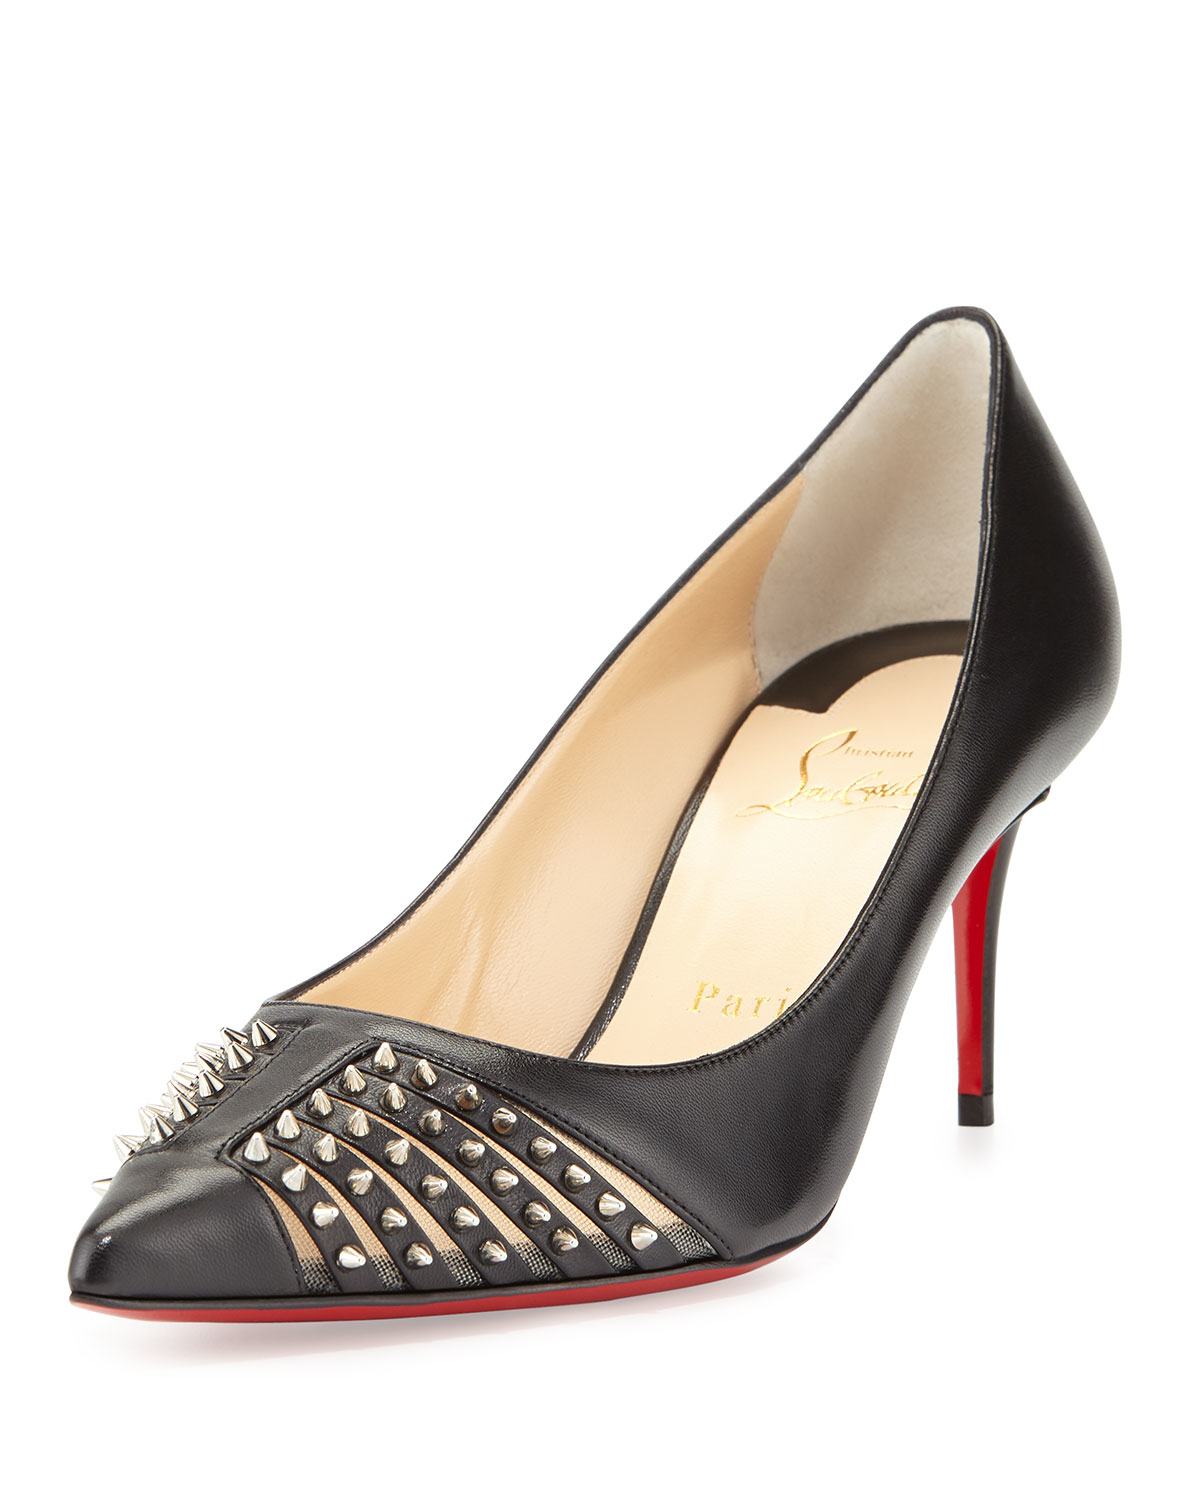 louboutin shoes for men - Christian louboutin Baretta Studded Low-heel Red Sole Pump in ...